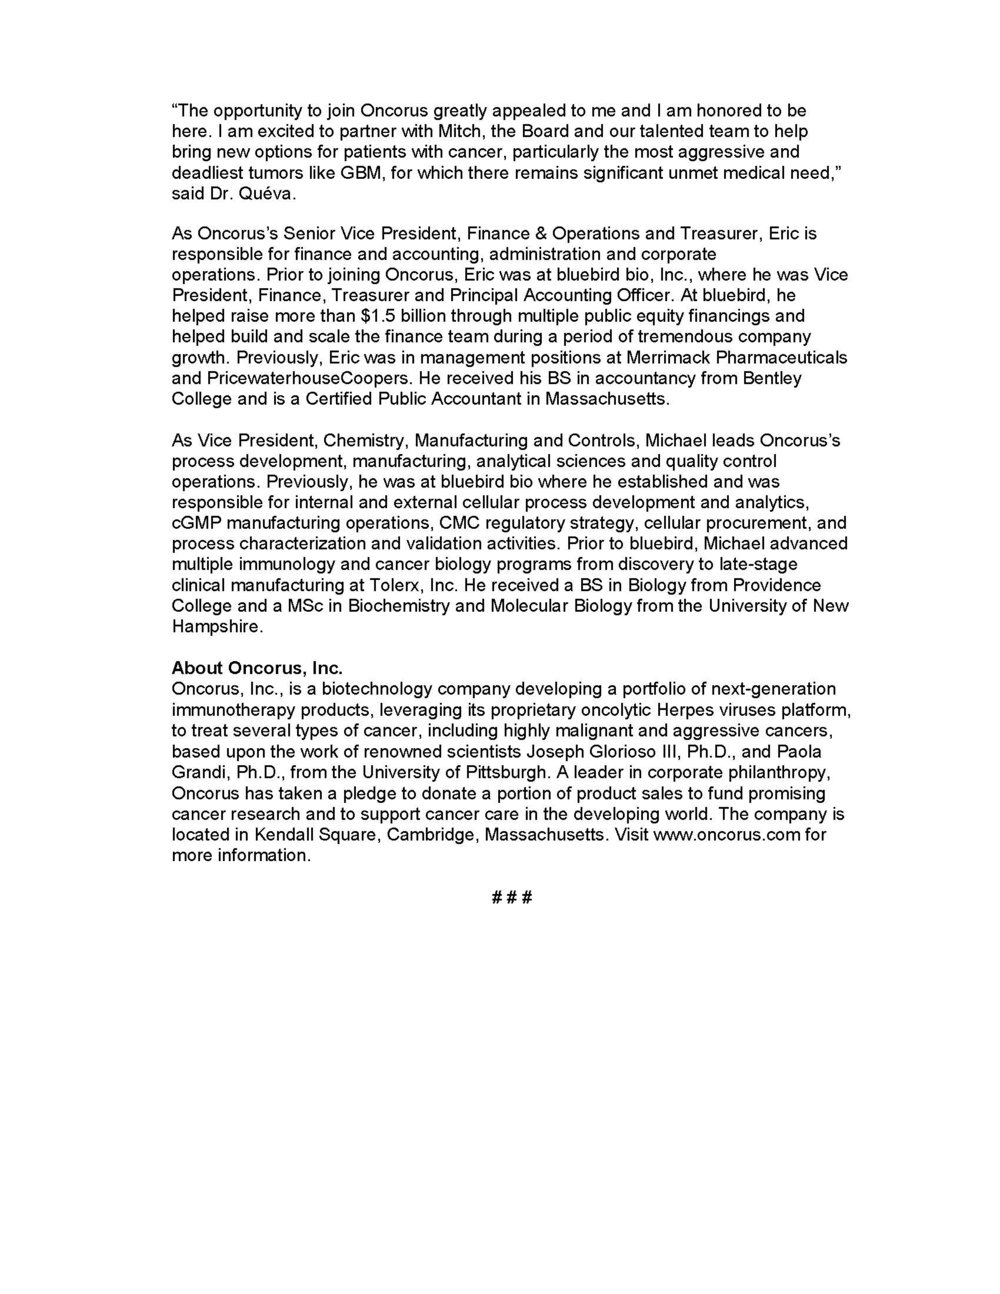 Oncorus Queva et al Appointment Press Release APPROVED 100317 9aET_Page_2.jpg